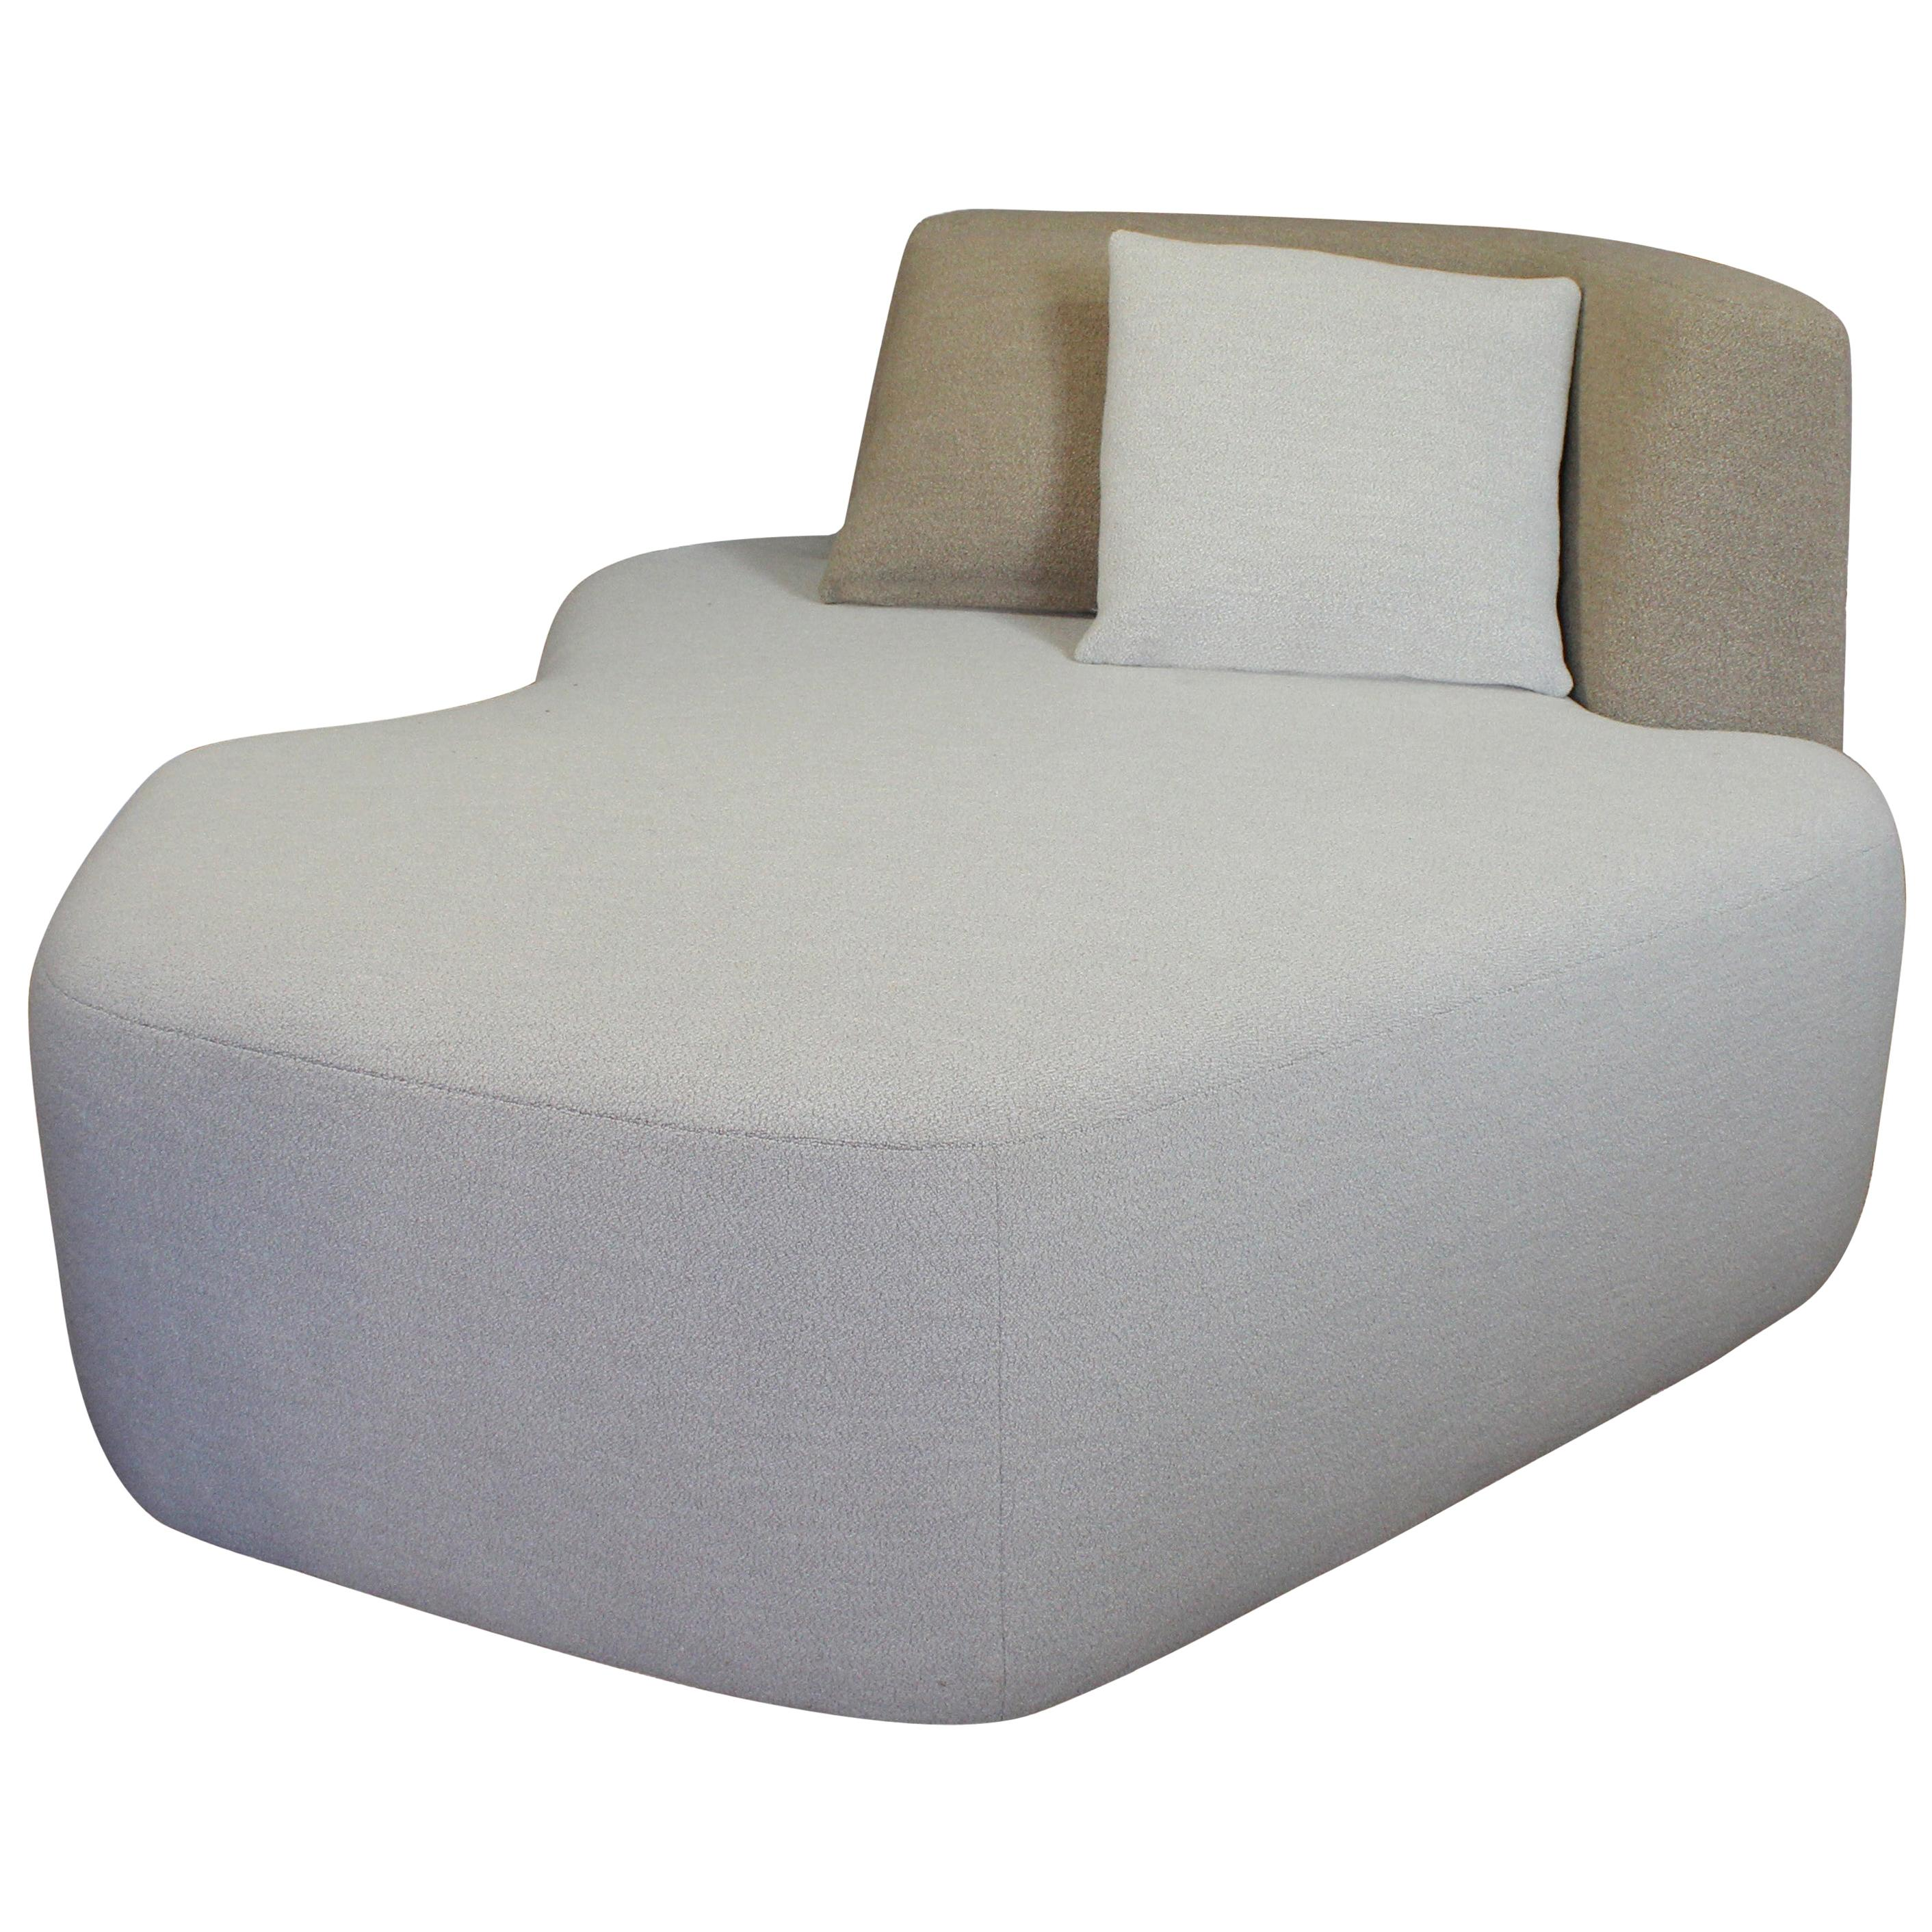 Organic Sofa Pierre in Cream and Brown Wool Design Eric Gizard Made in France